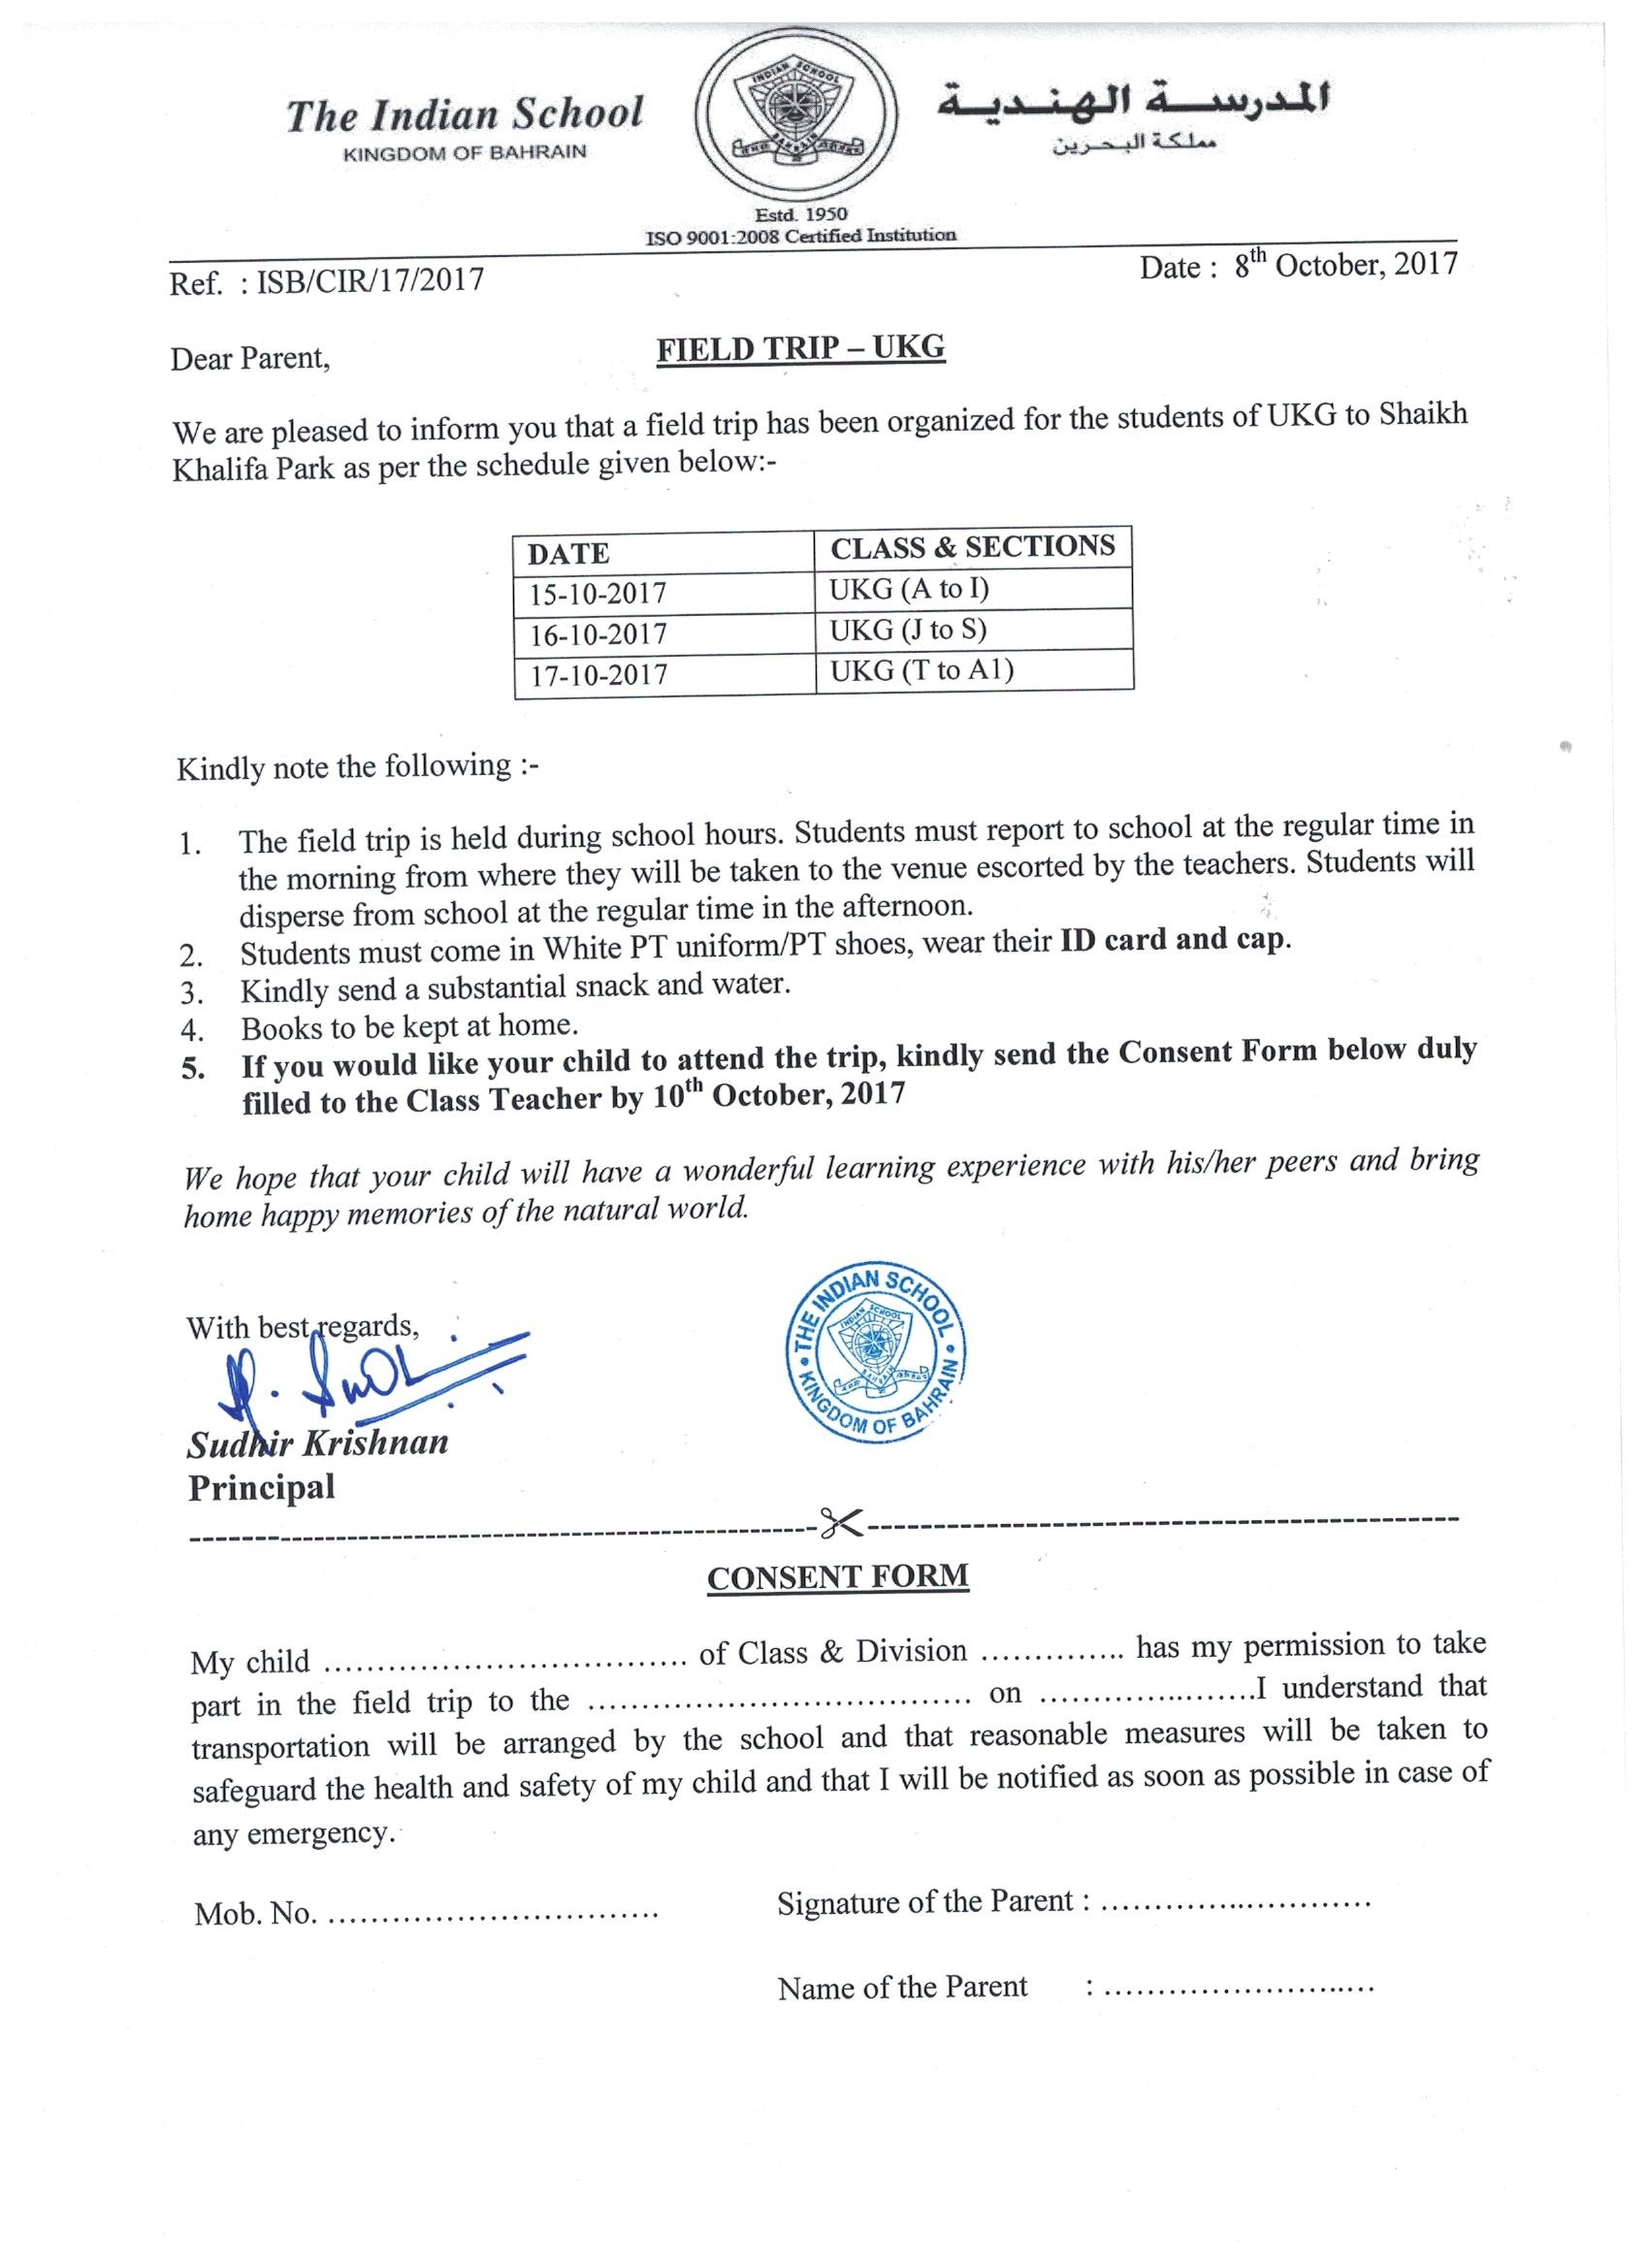 worksheet Integrated Math 1 Worksheets 323382592295 prepositions worksheets grade 4 excel balancing double digit subtraction without regrouping the indian school bahrain integrated math 1 pdf